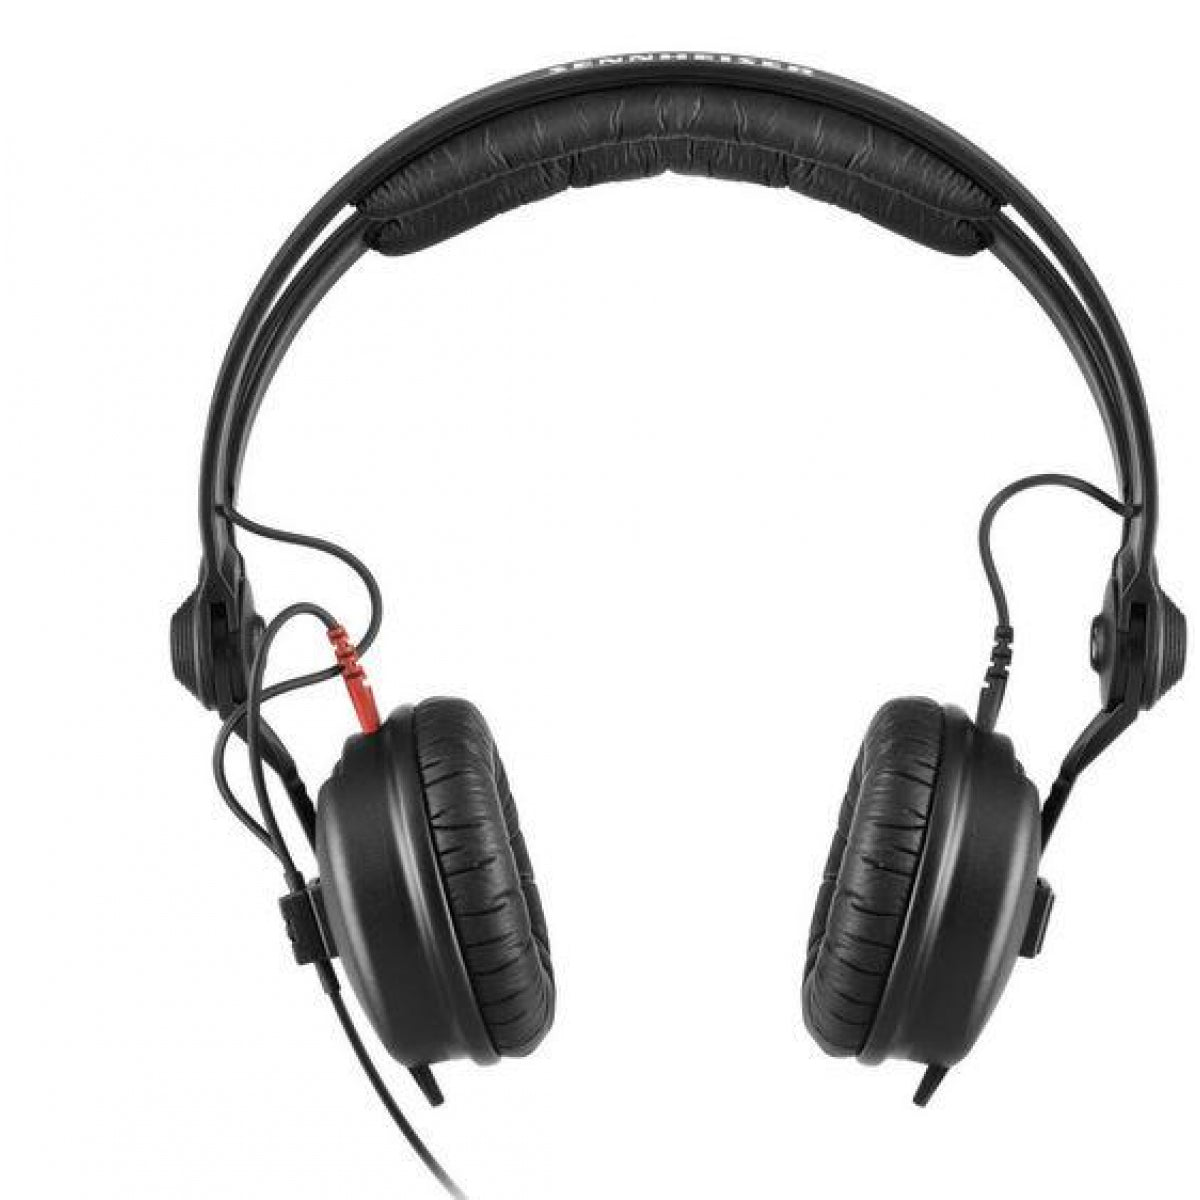 Sennheiser HD 25 PLUS Closed-back, on-ear professional monitoring headphones - Audio Leaders